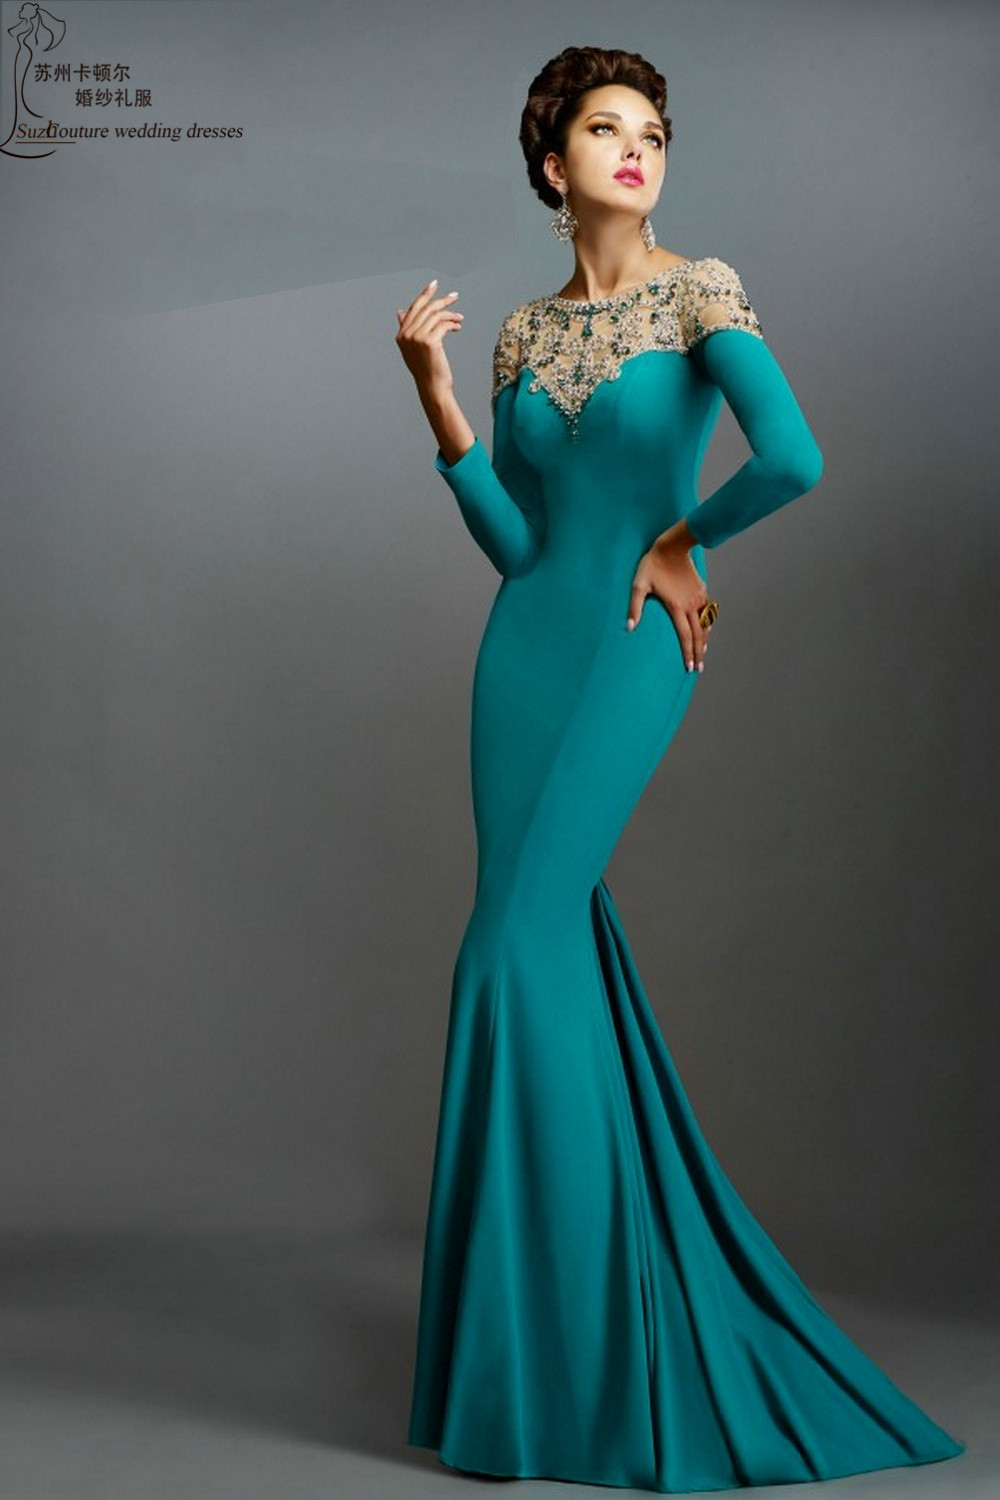 Beautiful Full Sleeve Prom Dresses Ideas - Styles & Ideas 2018 ...